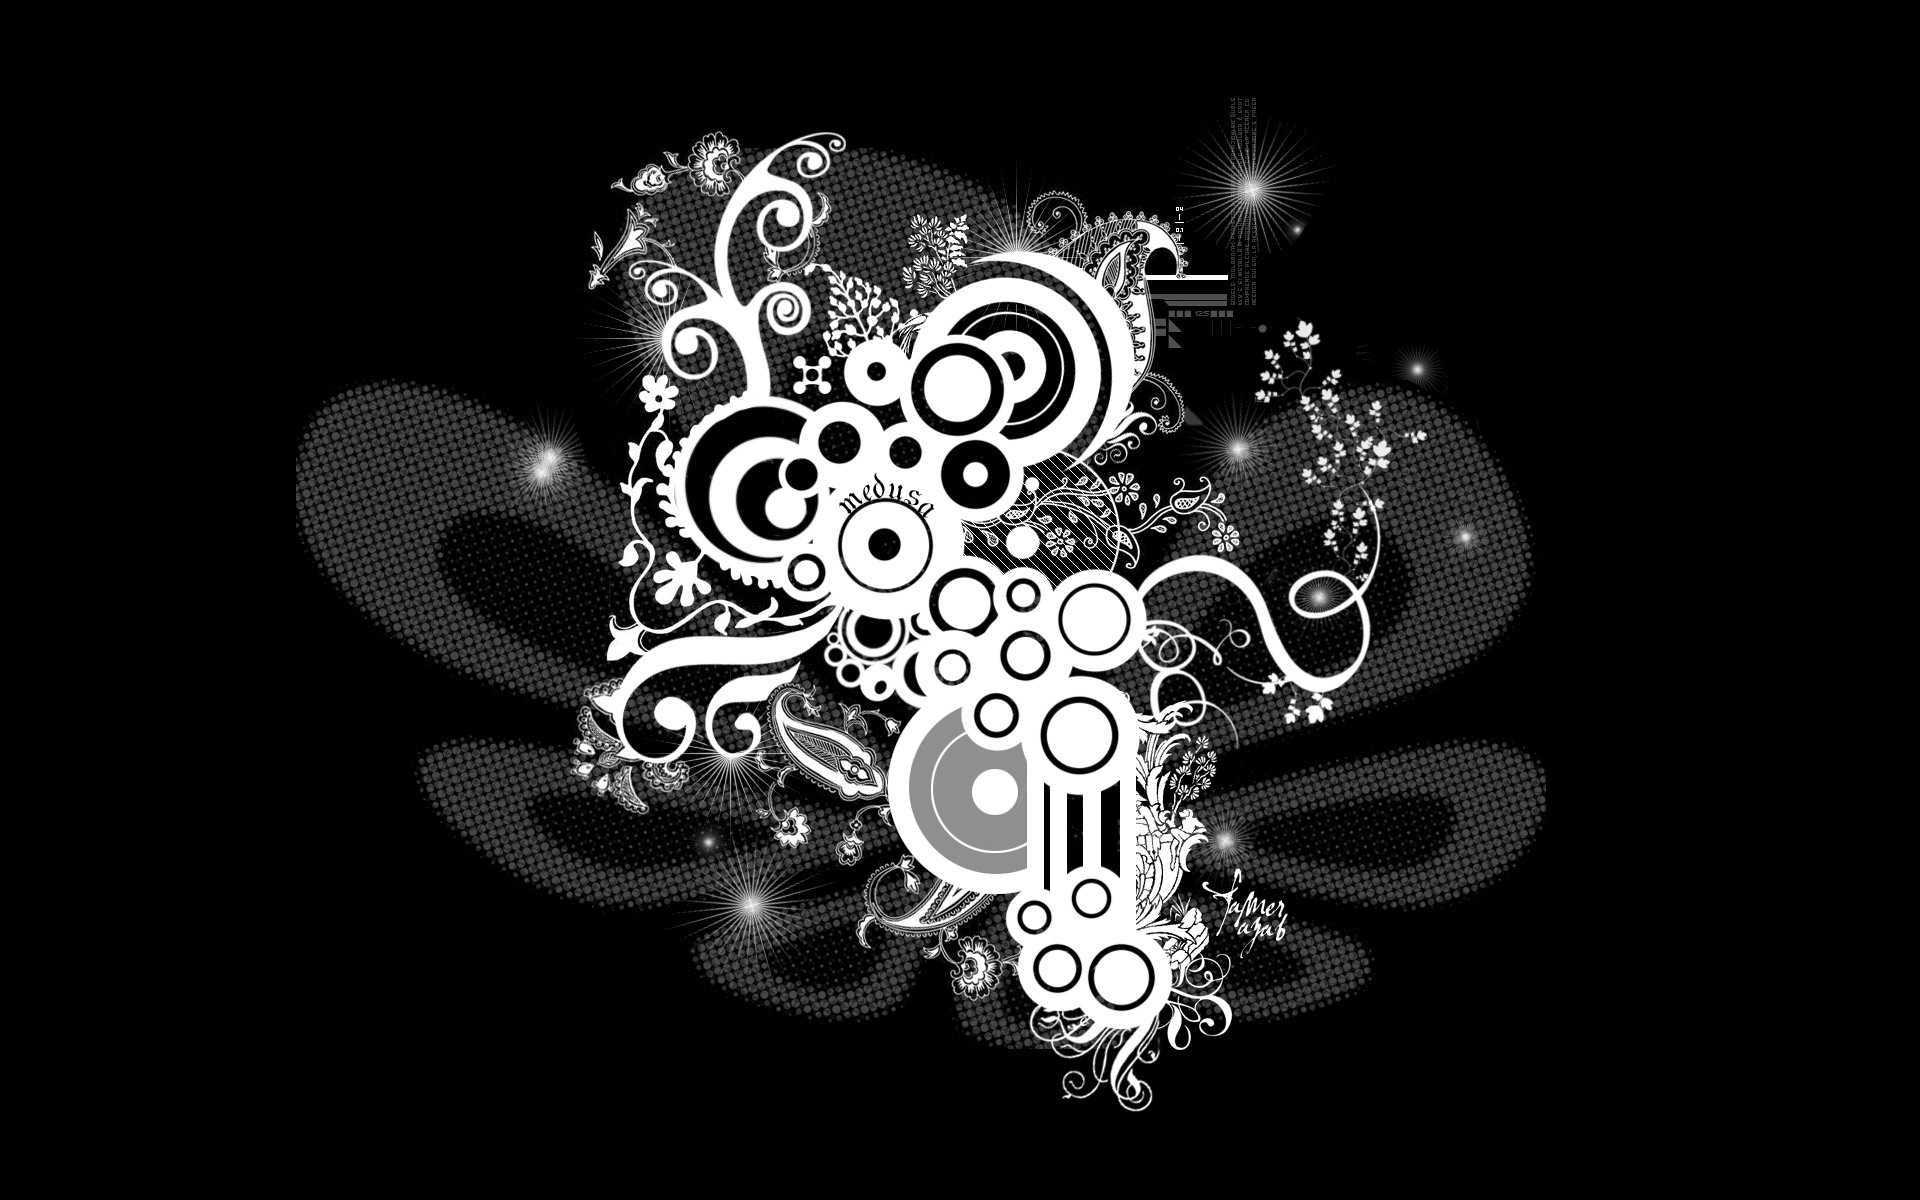 Black And White Desktop Wallpaper Designs Hd Black and white desktop 1920x1200